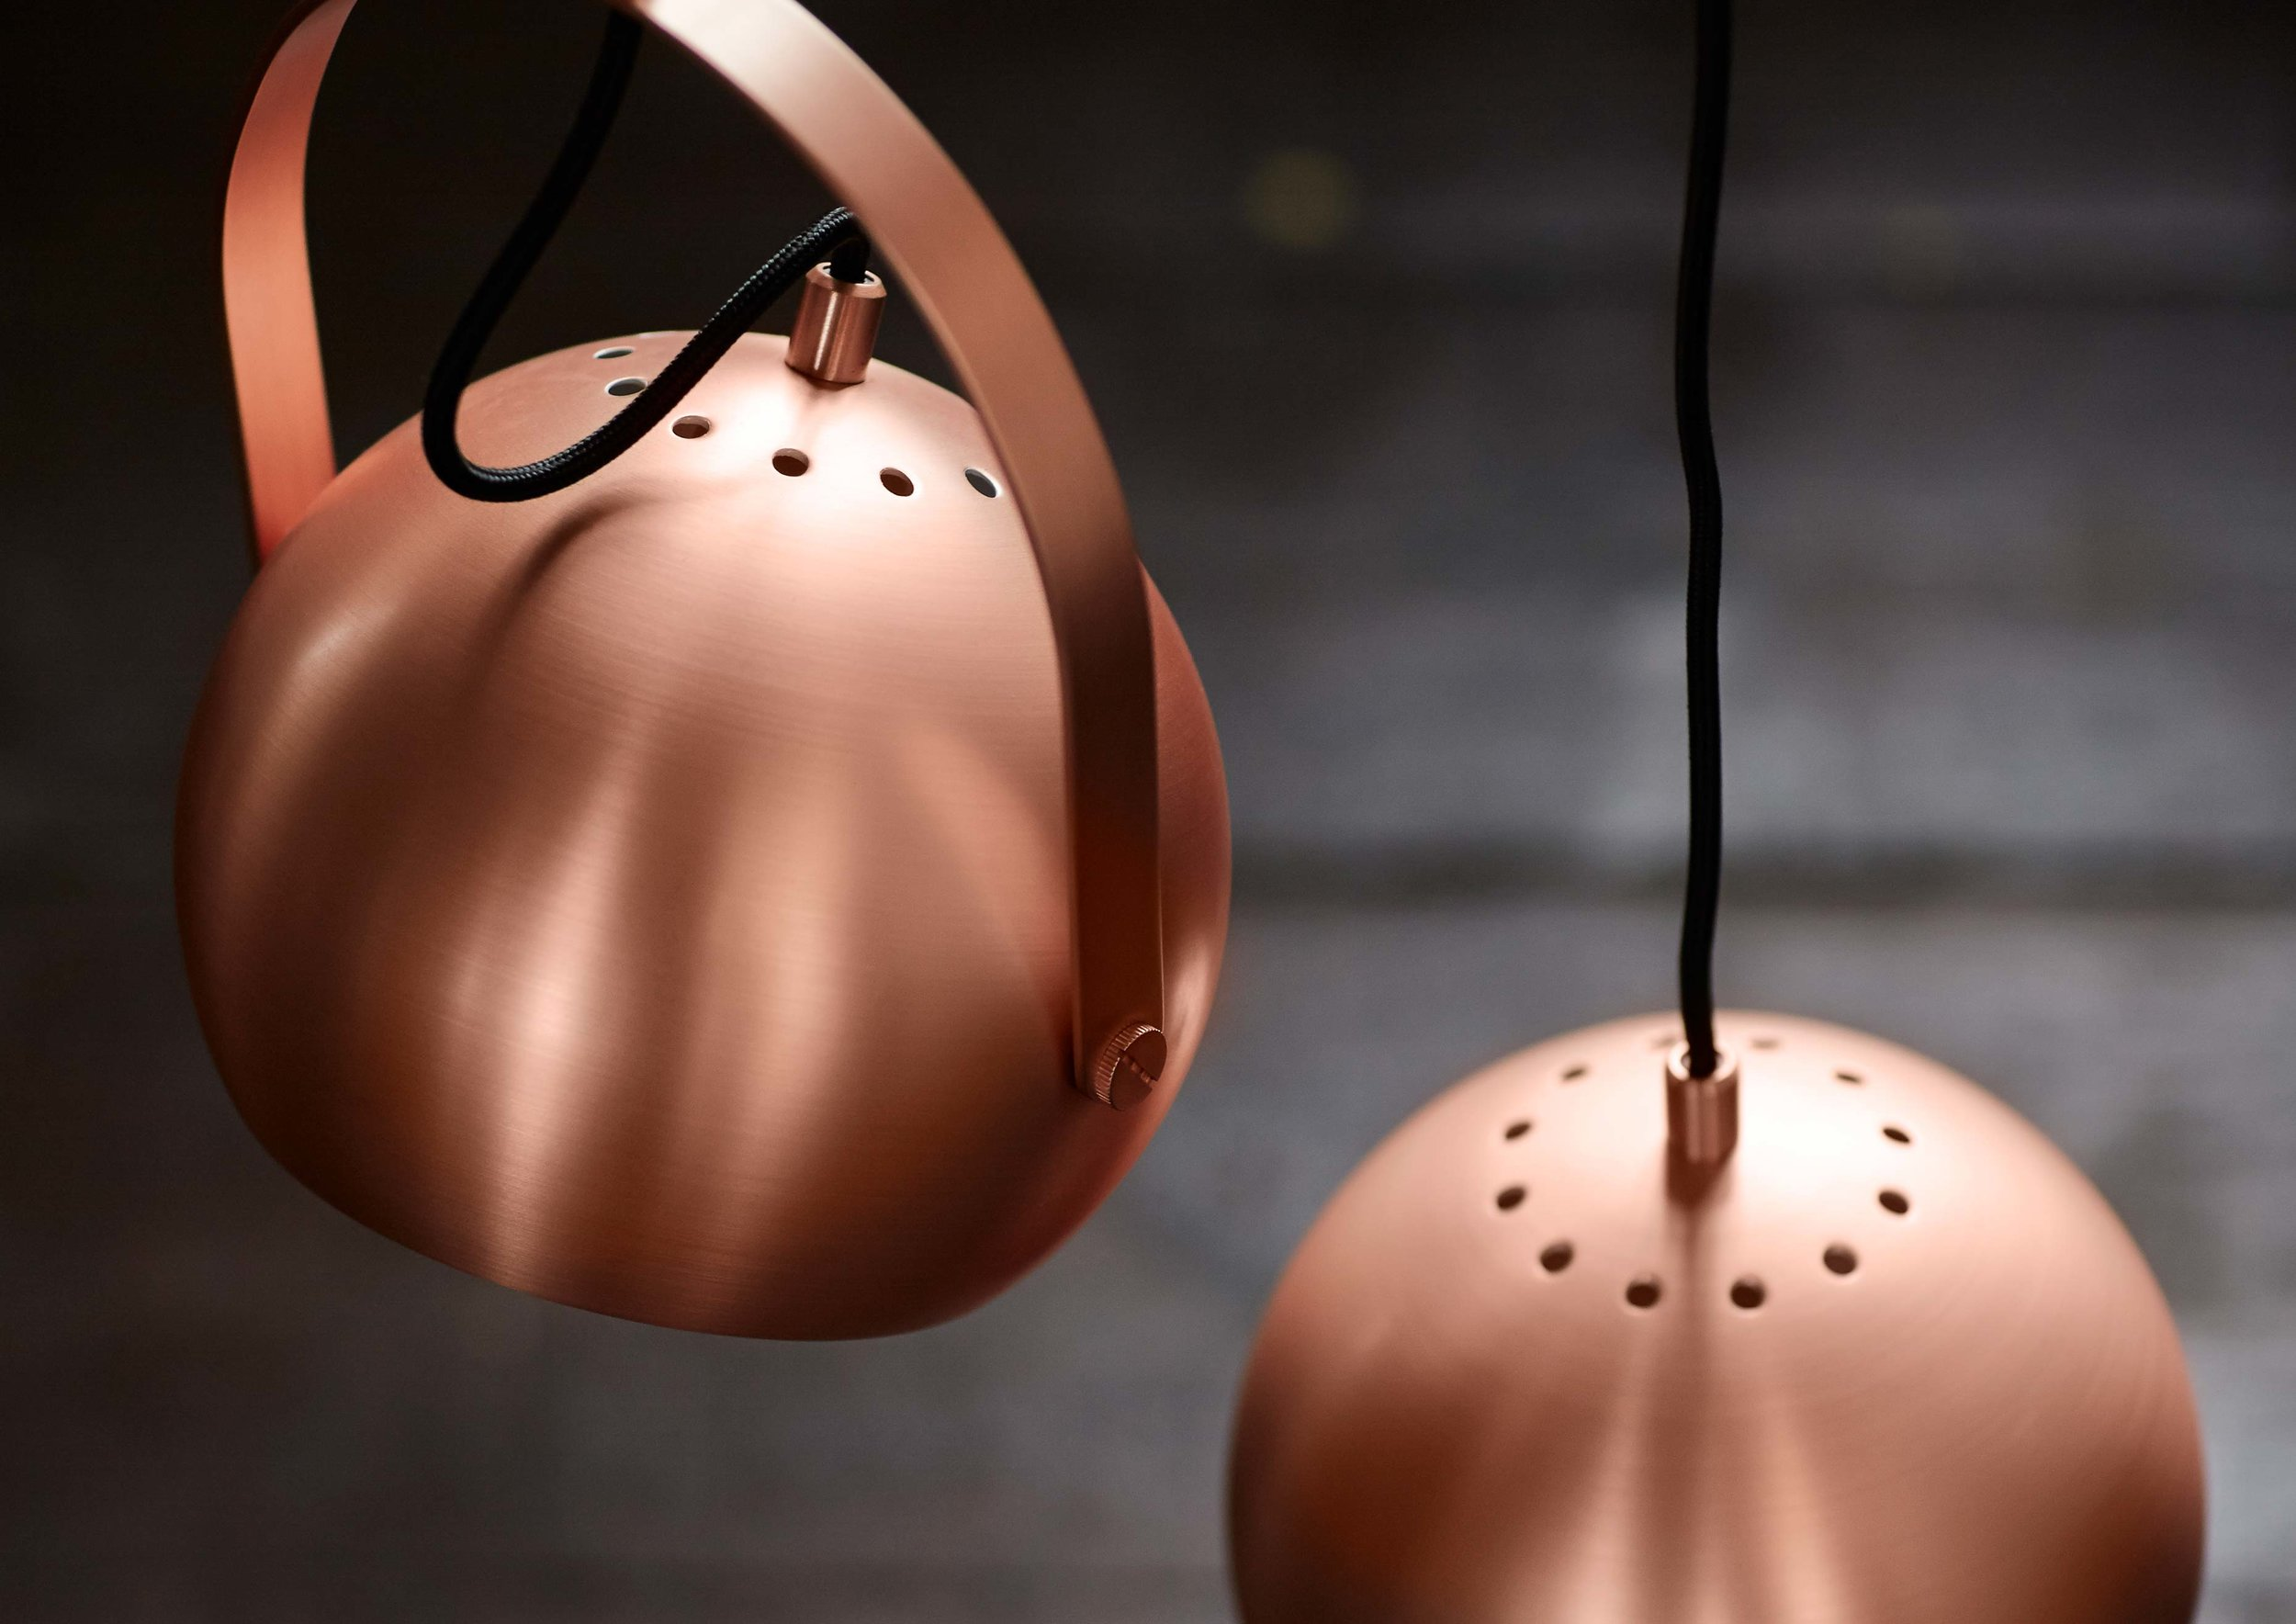 Ball-pendant-with-handle-brushed-copper---lifestyle-closeup-Arsenalgaarden.jpg